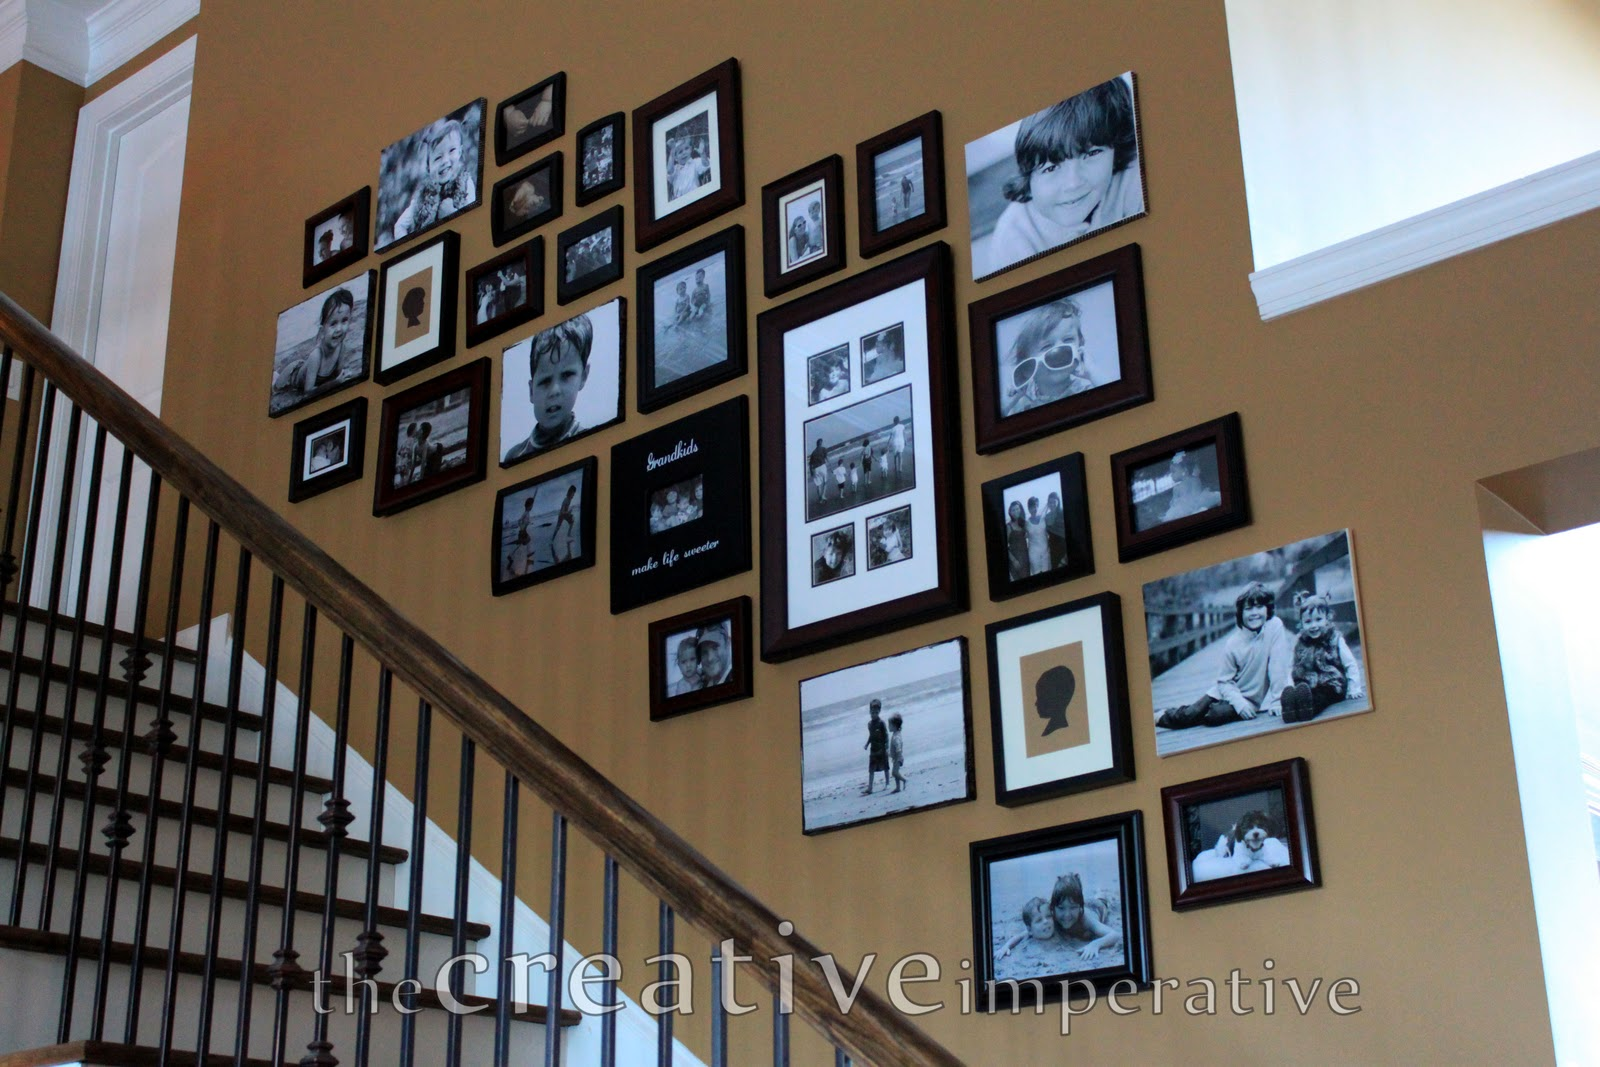 the creative imperative: stairway gallery wall